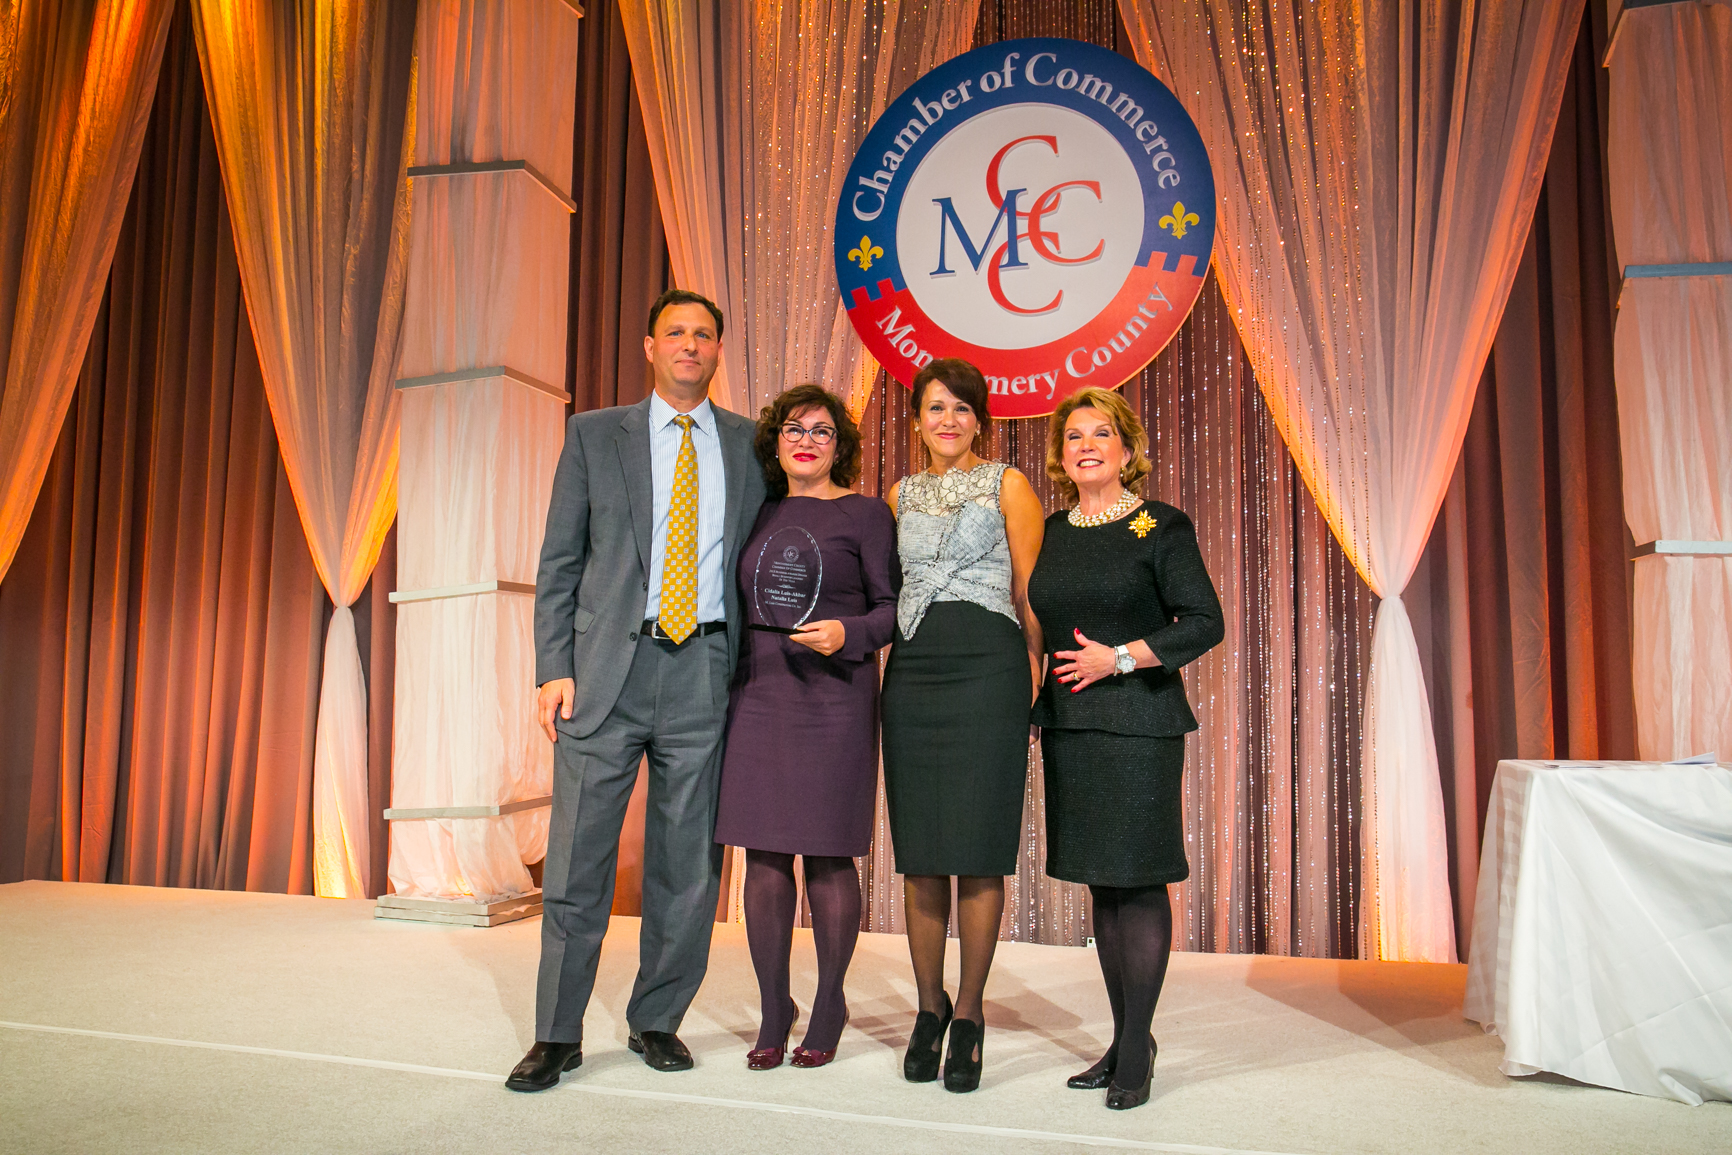 Sisters Receive MCCC Small Business Leader of the Year Award